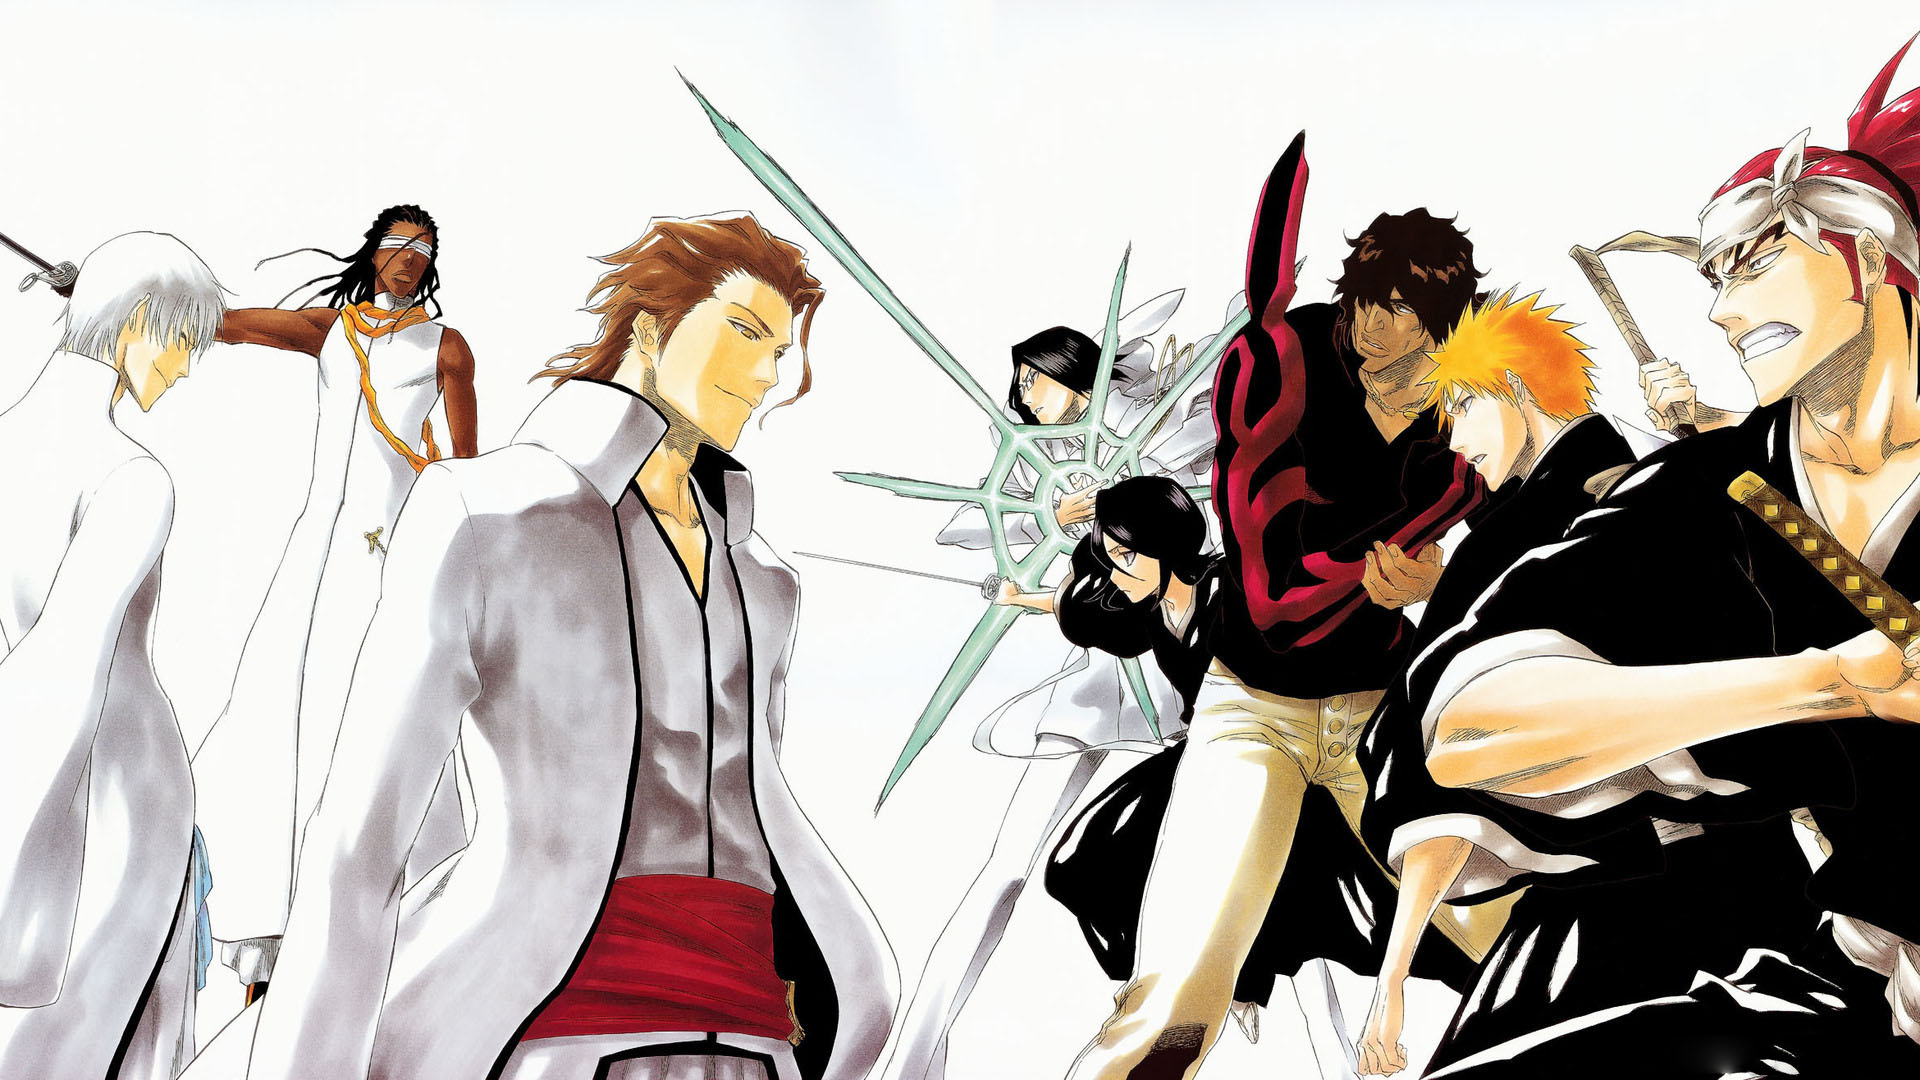 Bleach Manga Wallpaper